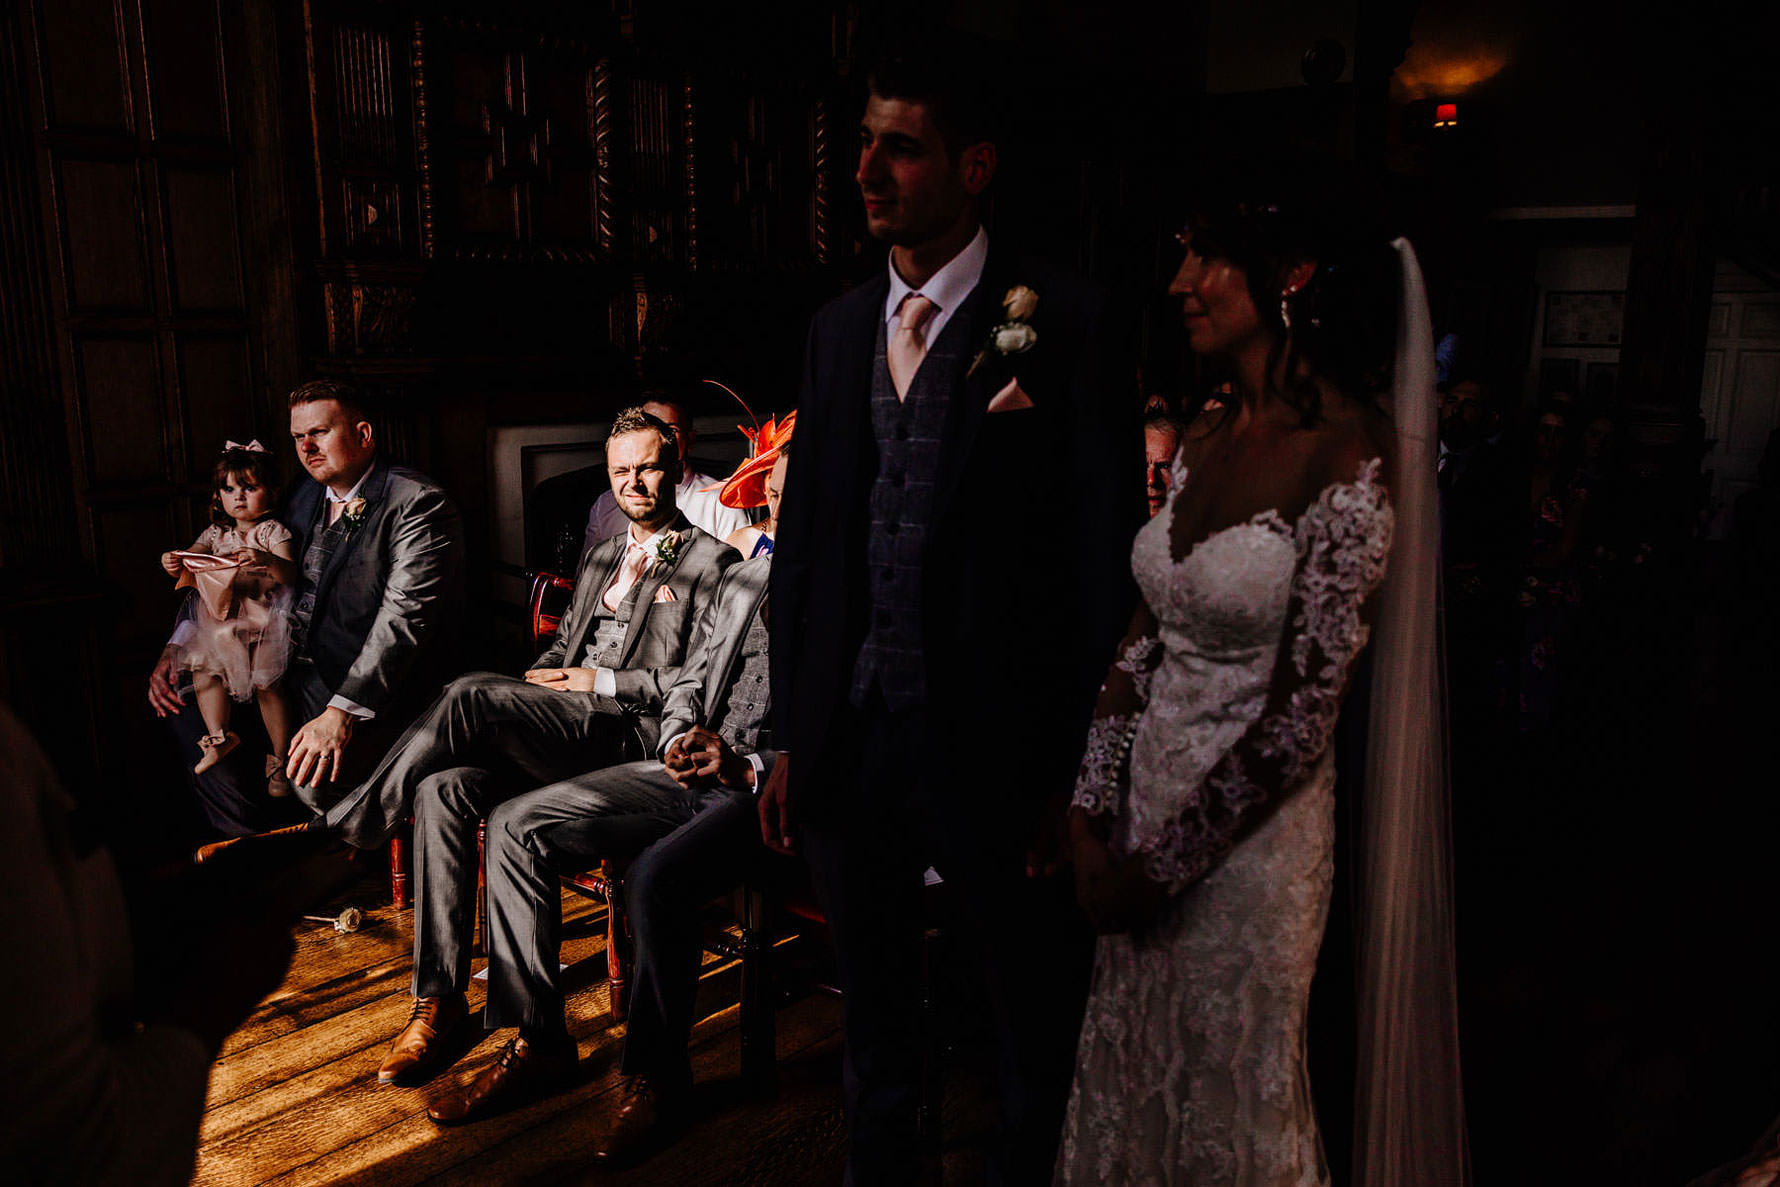 wedding images at lamport hall